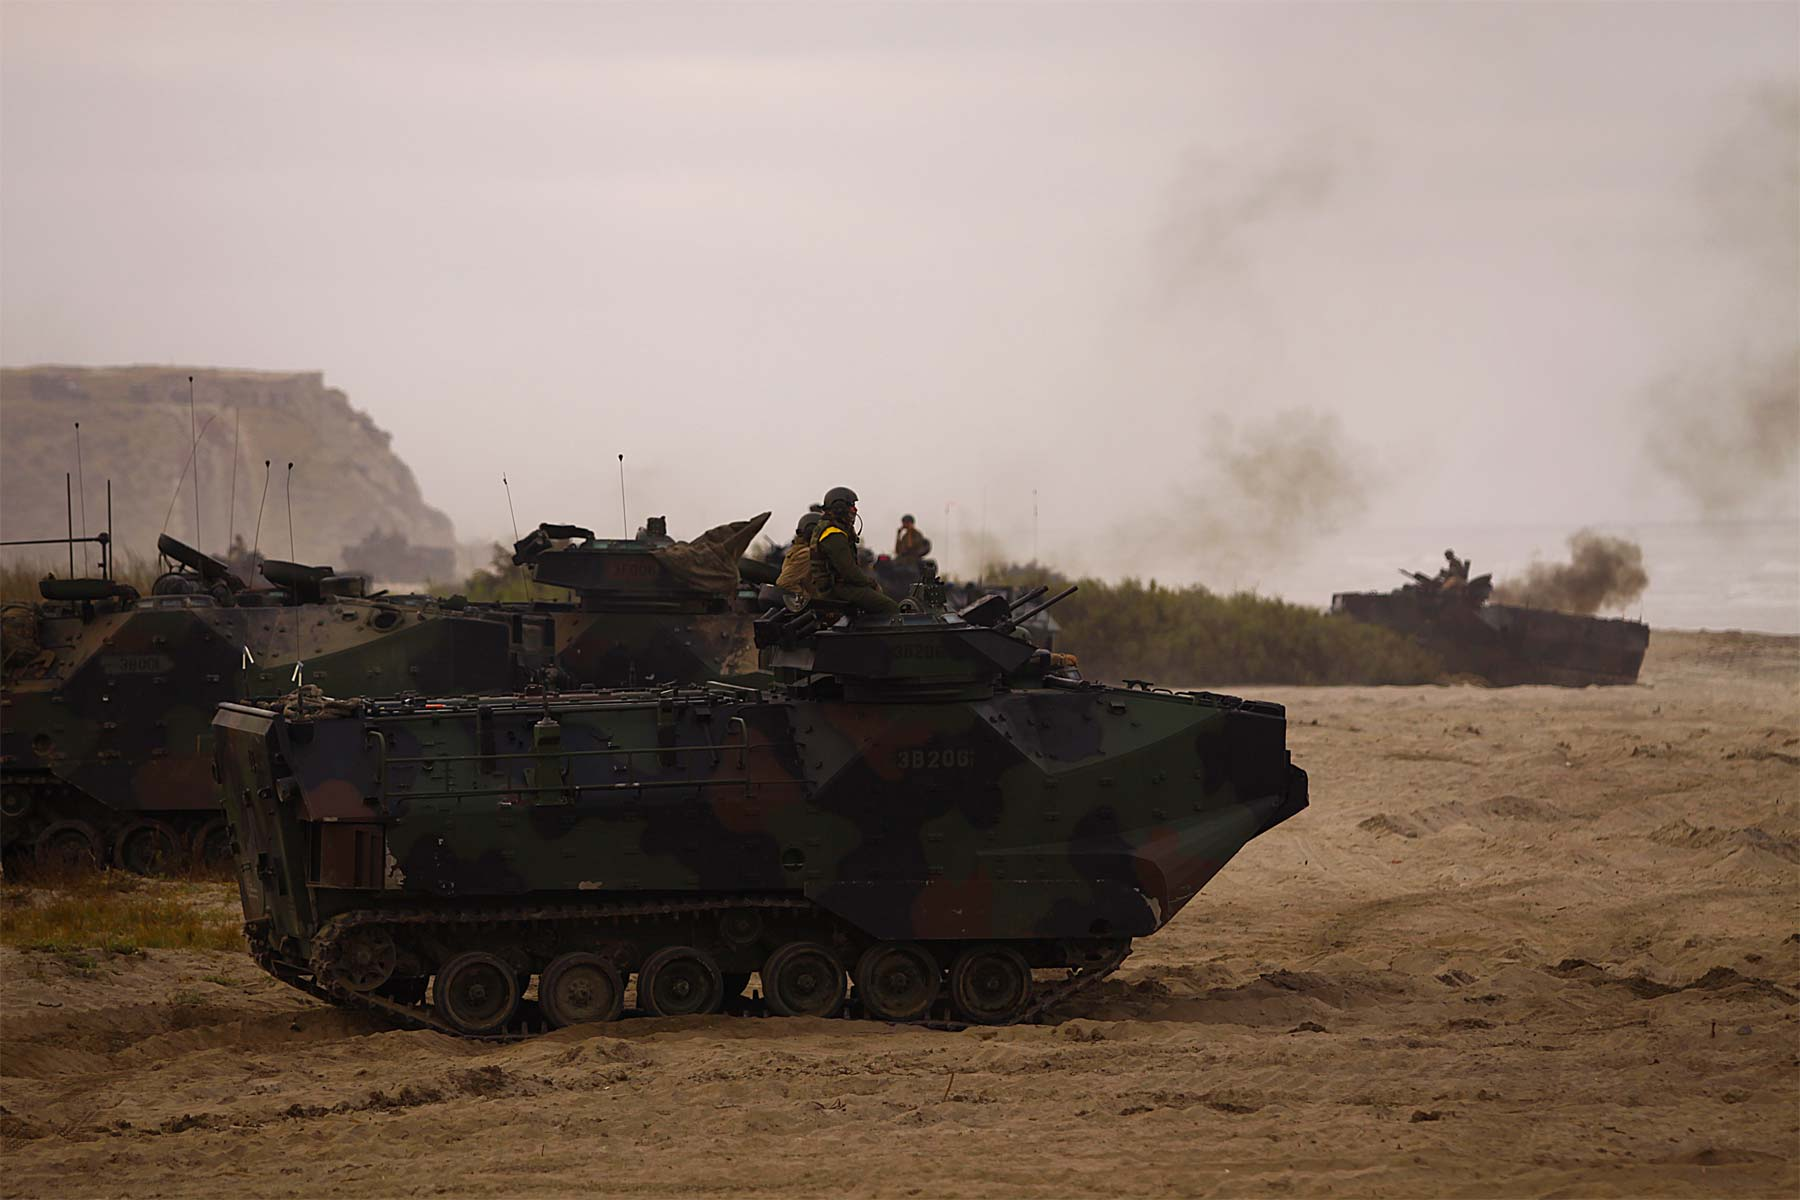 15 Marines Treated for Burns After Amphibious Vehicle Catches Fire